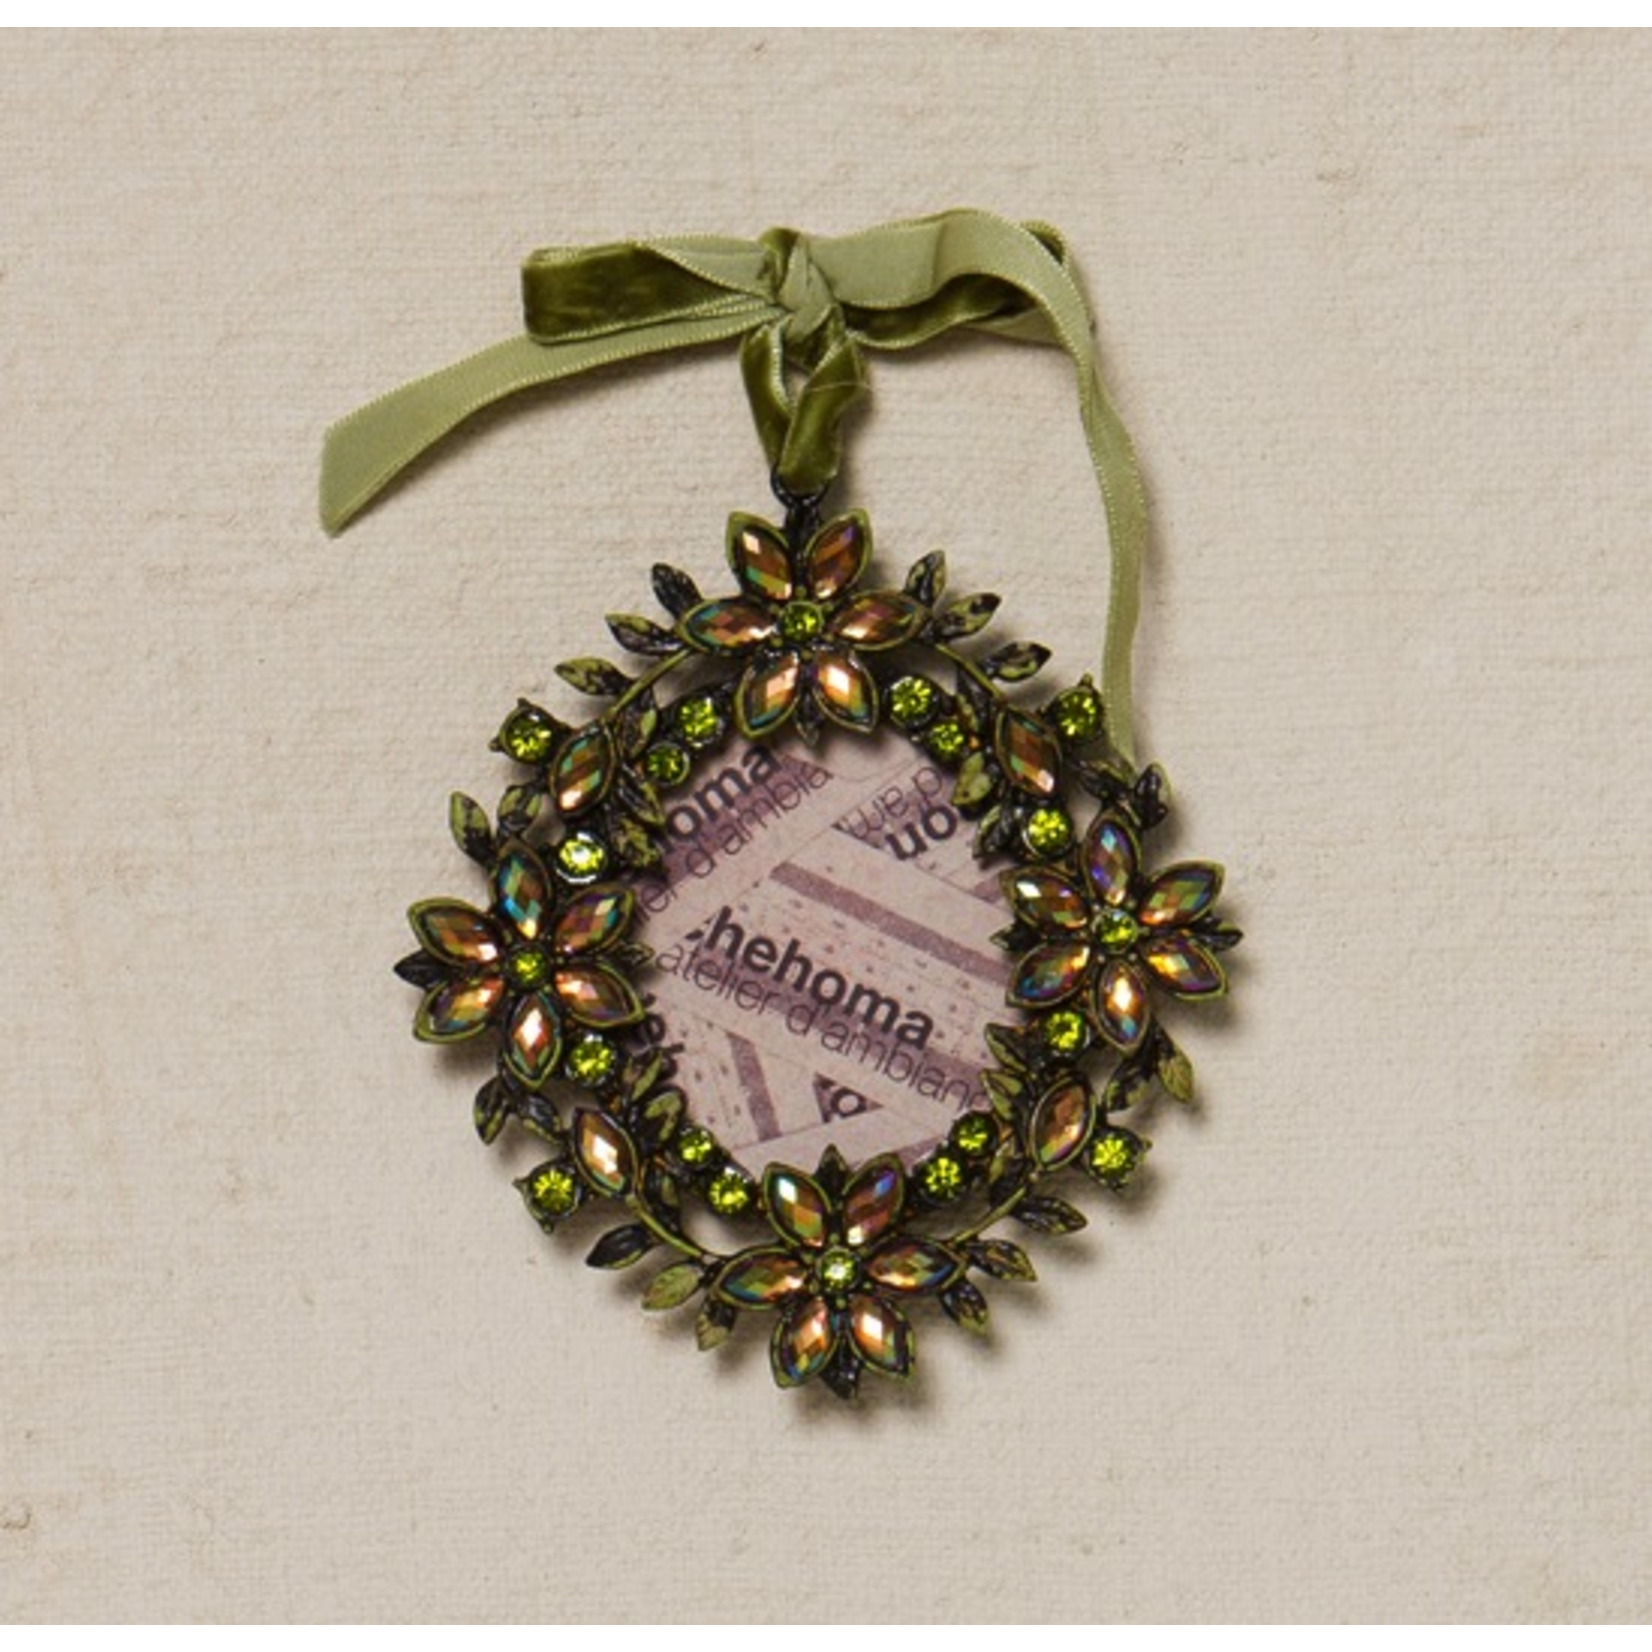 CHEHOMA Hanging pict. Frame w/flowers and stone